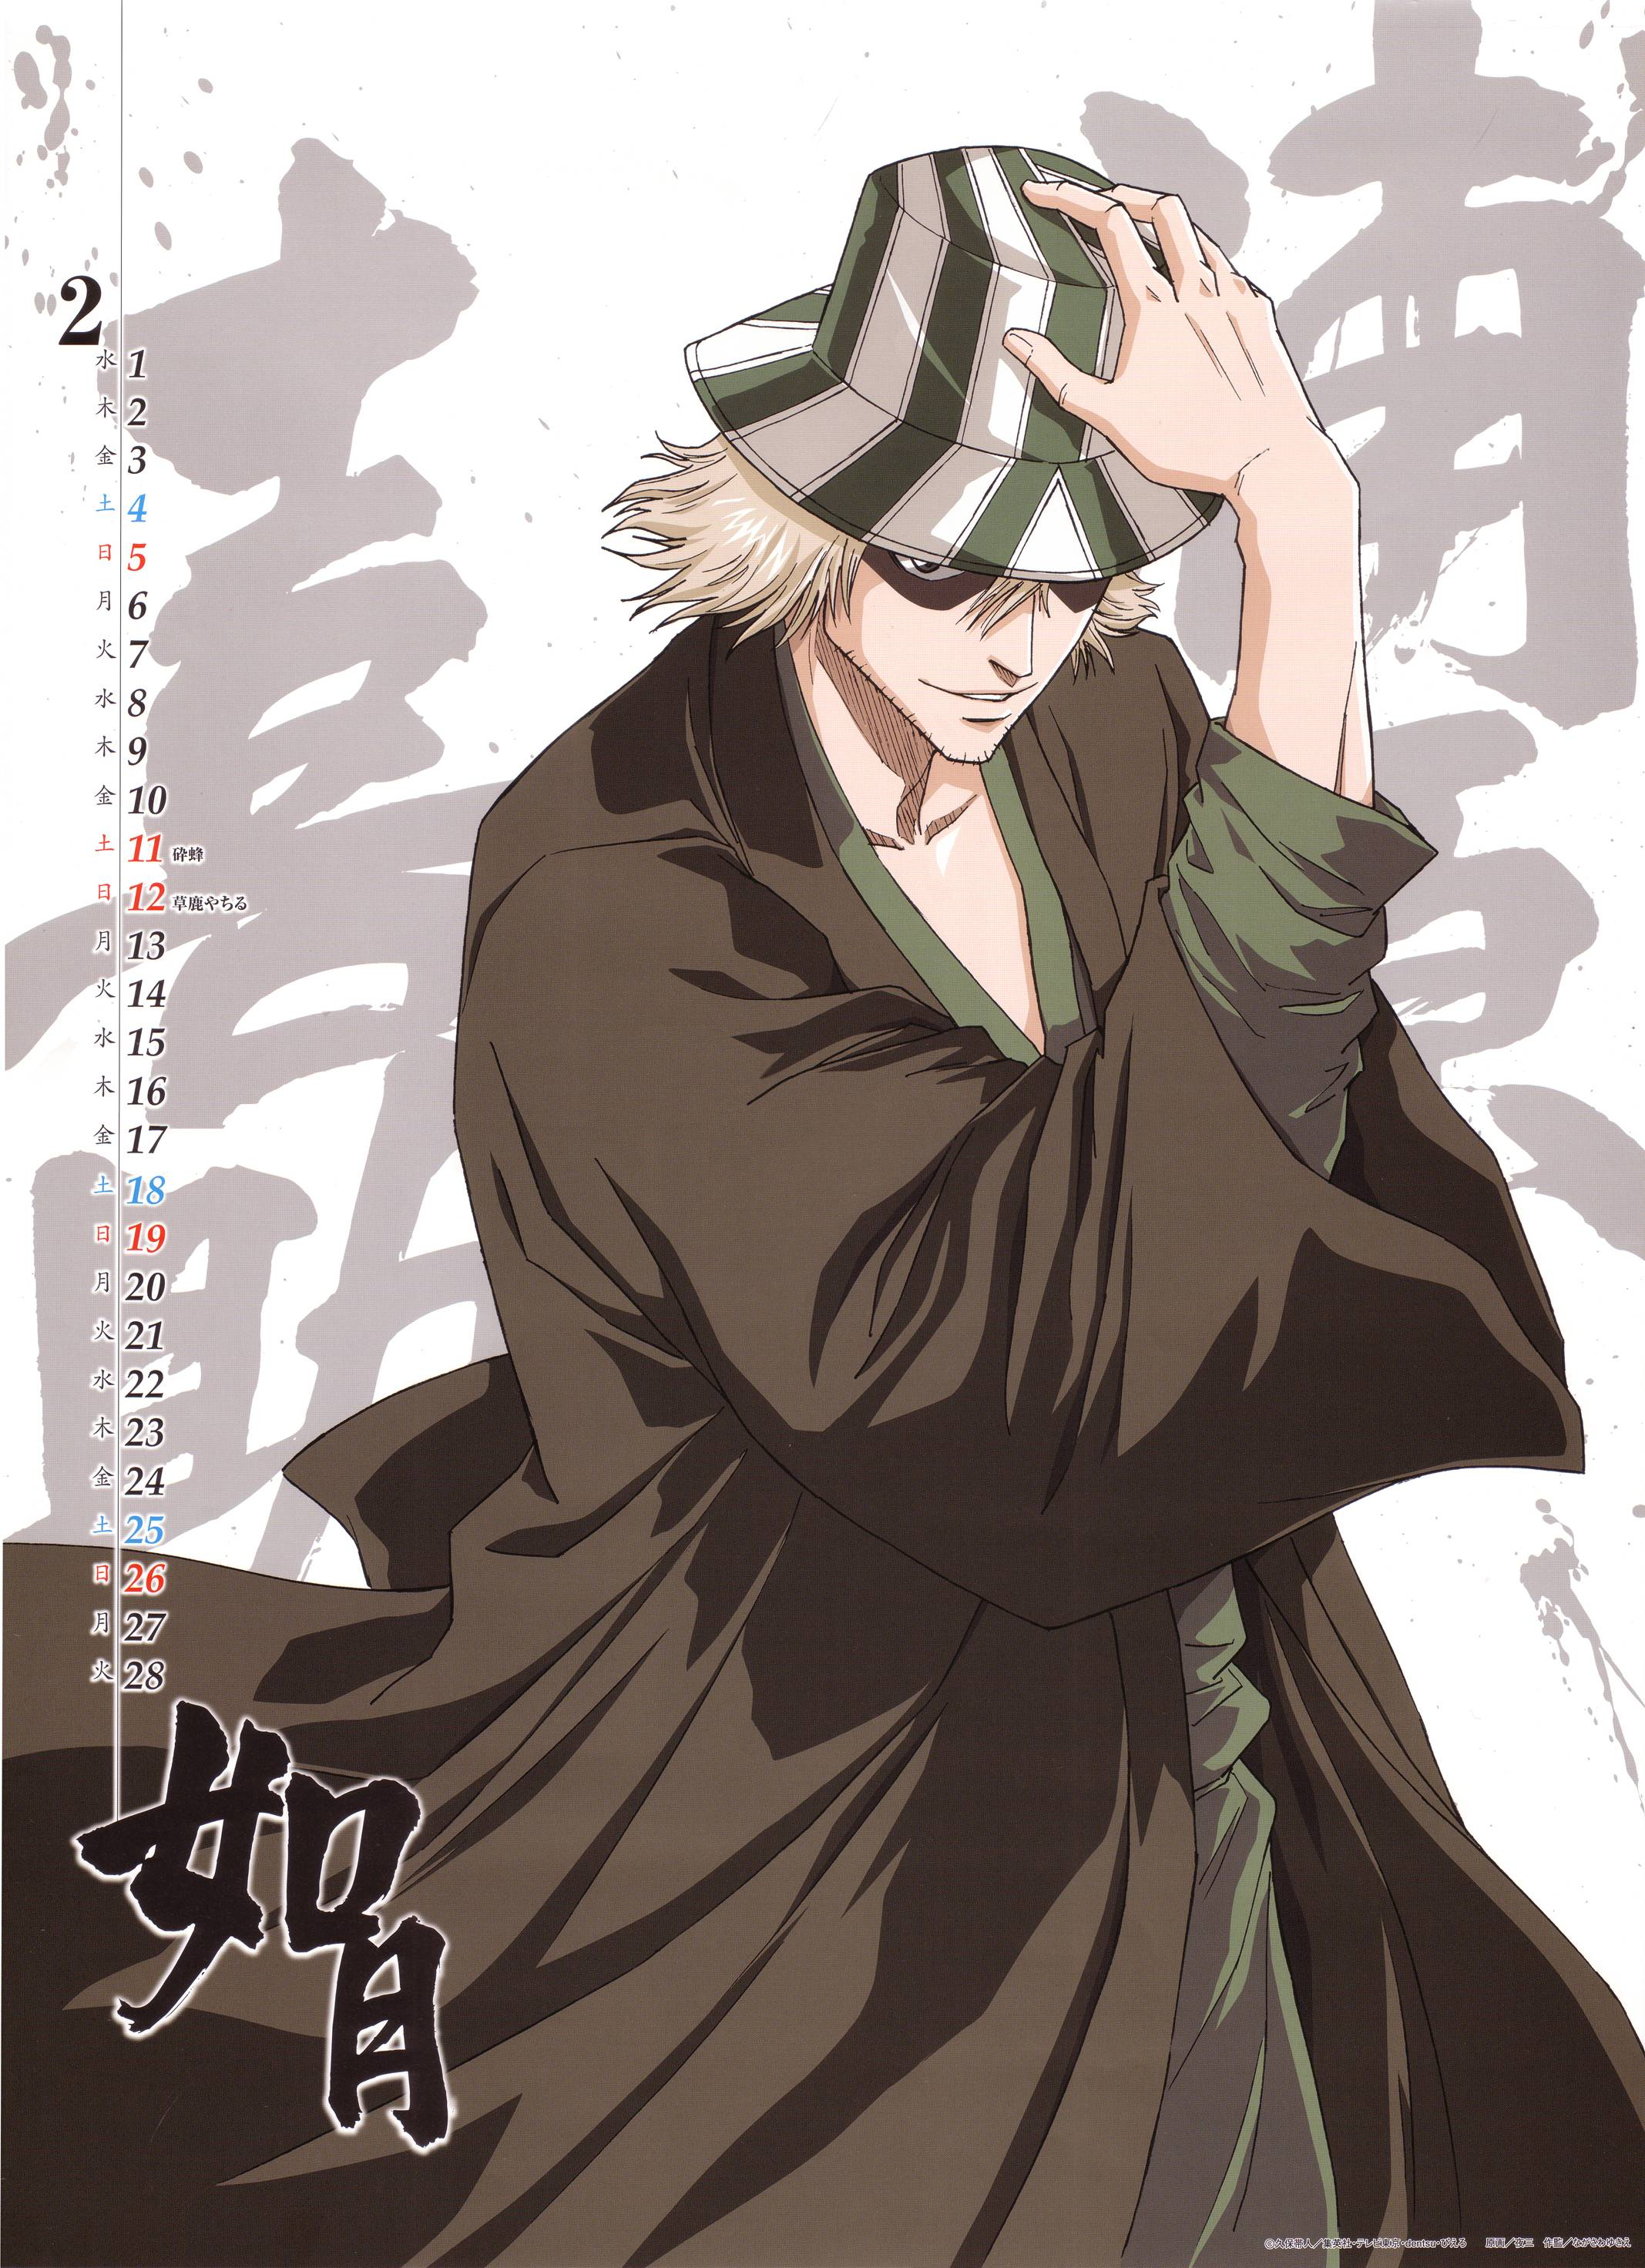 Who Is With Urahara In Bleach 518 Urahara Kisuke Full